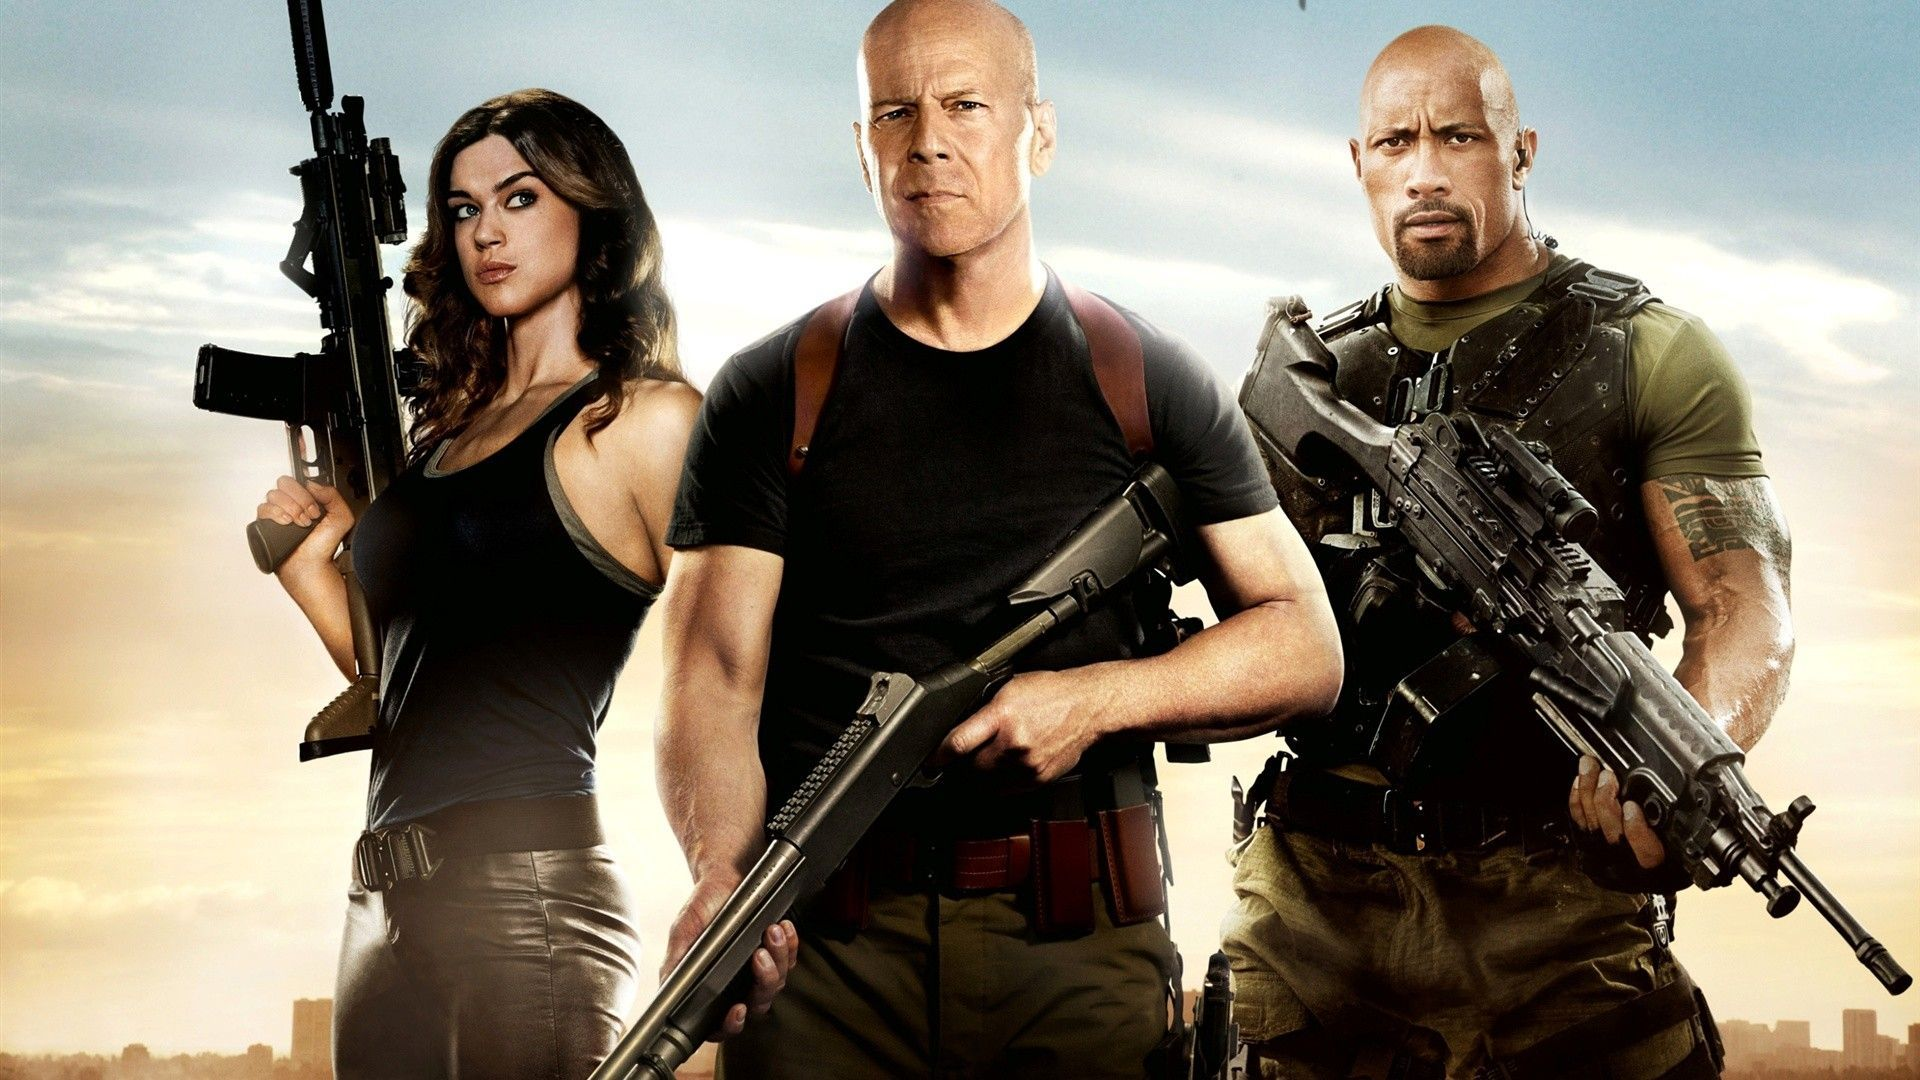 Watch Online Free Movies Without Ads Original 123movies Best Action Movies Action Movies Gi Joe